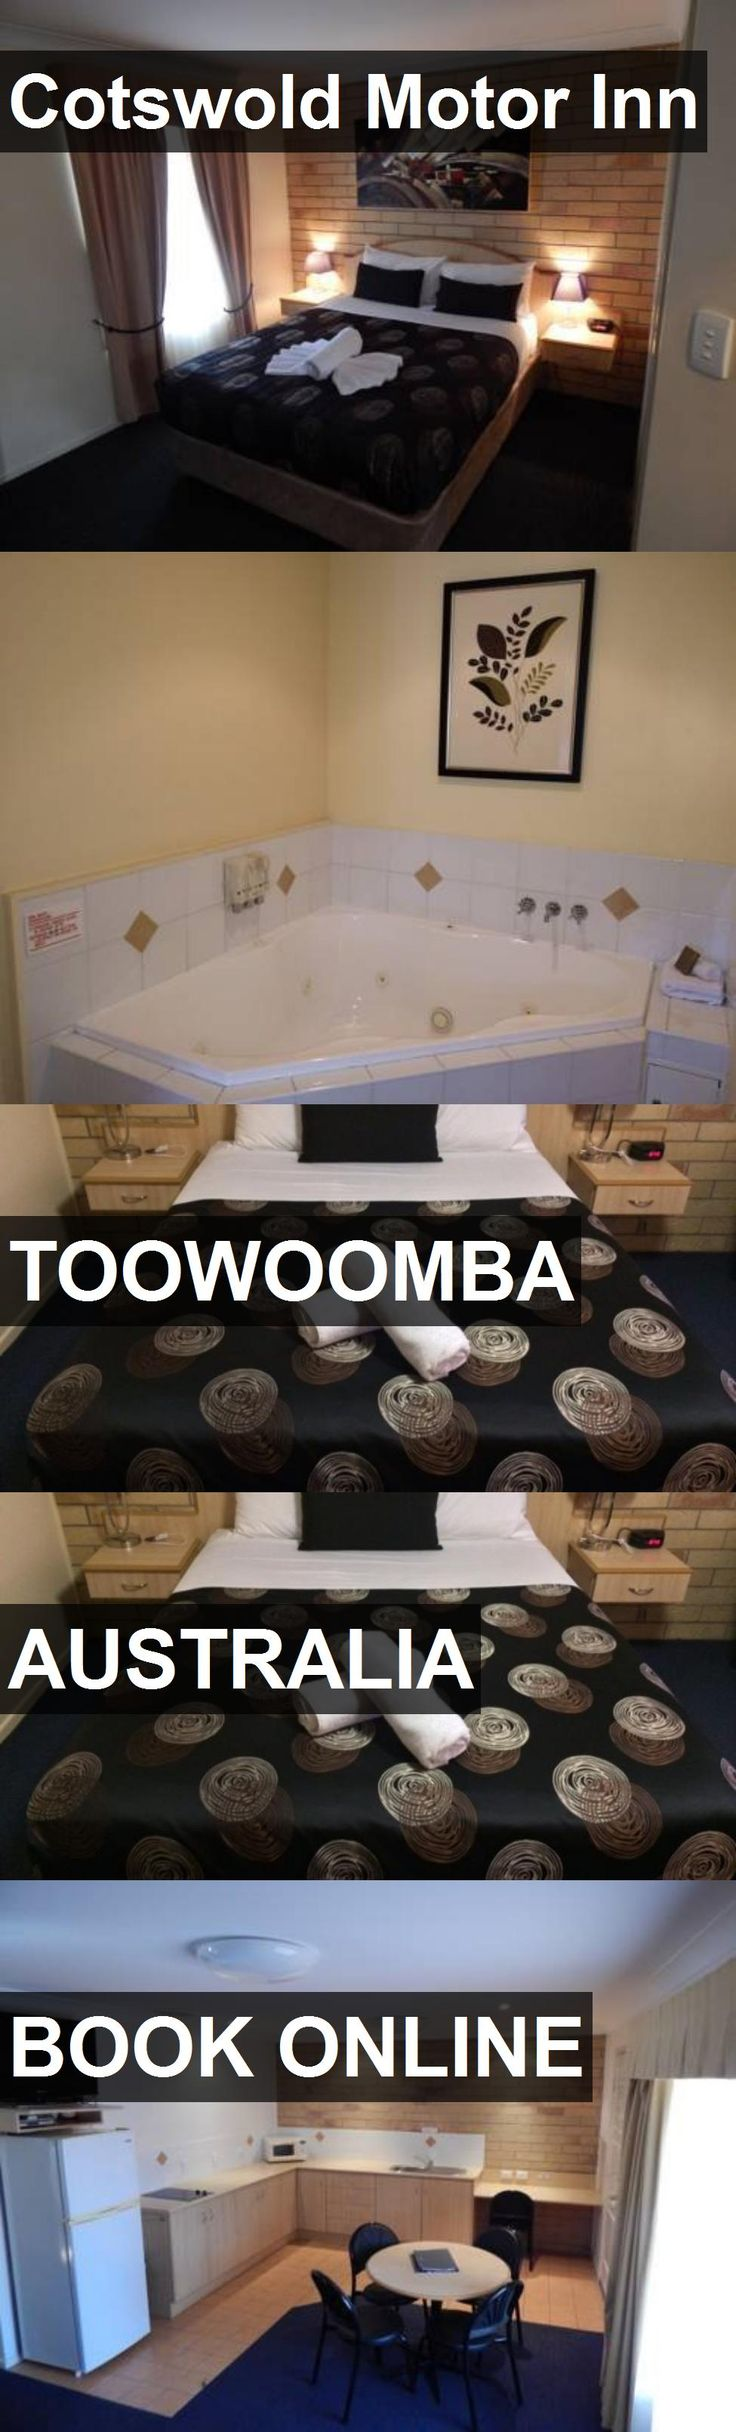 Hotel Cotswold Motor Inn in Toowoomba, Australia. For more information, photos, reviews and best prices please follow the link. #Australia #Toowoomba #hotel #travel #vacation